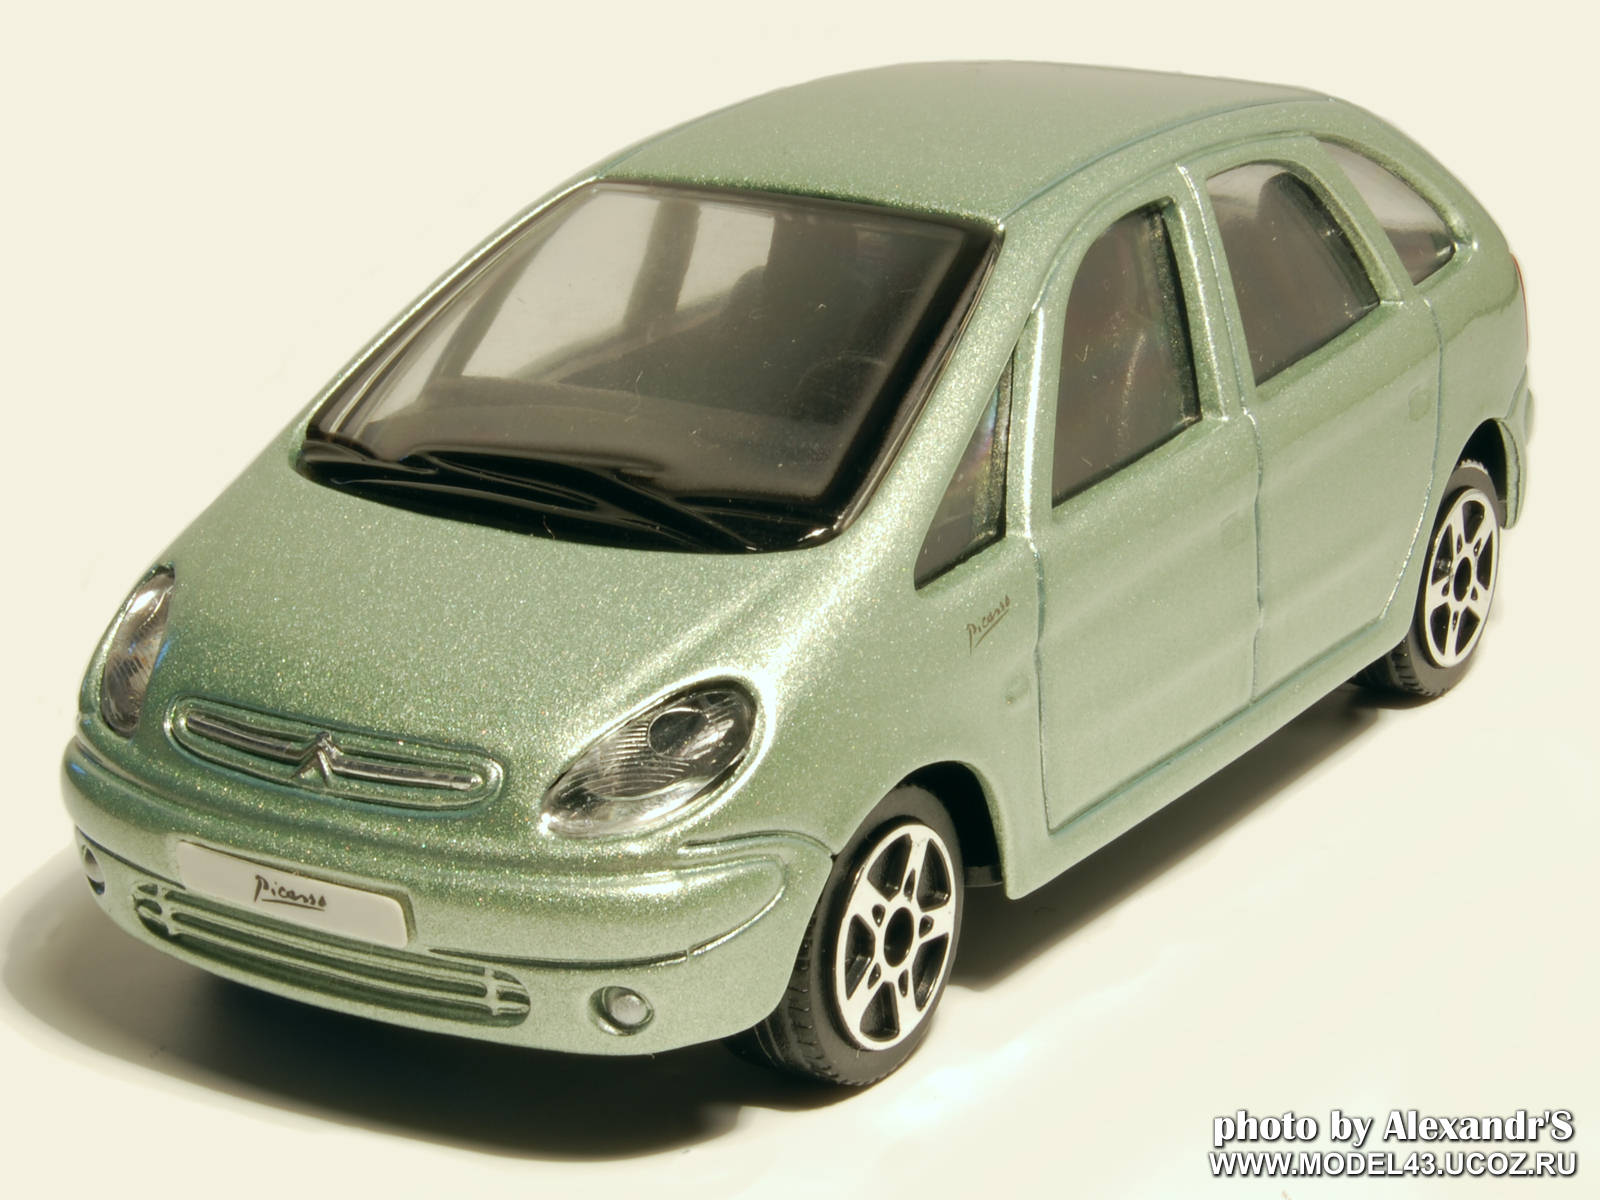 maisto 1999 citroen xsara picasso green metallic in 1 43 scale mdiecast. Black Bedroom Furniture Sets. Home Design Ideas